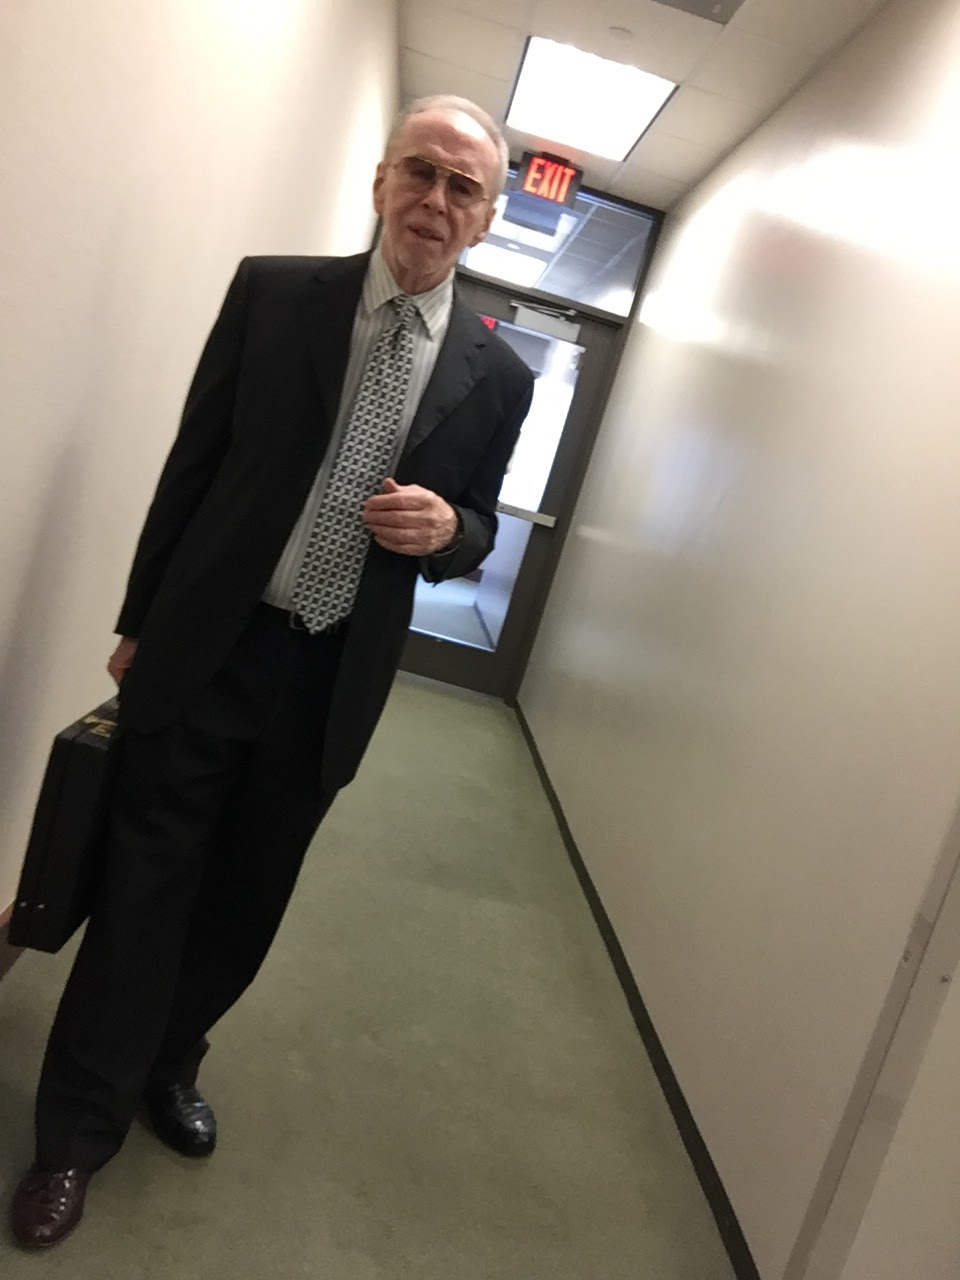 174th district court case 1430835 - In Addition To Being One Of The Best Trial Lawyers I Ve Seen Try A Case In The Cjc He S Also A Very Sharp Dresser